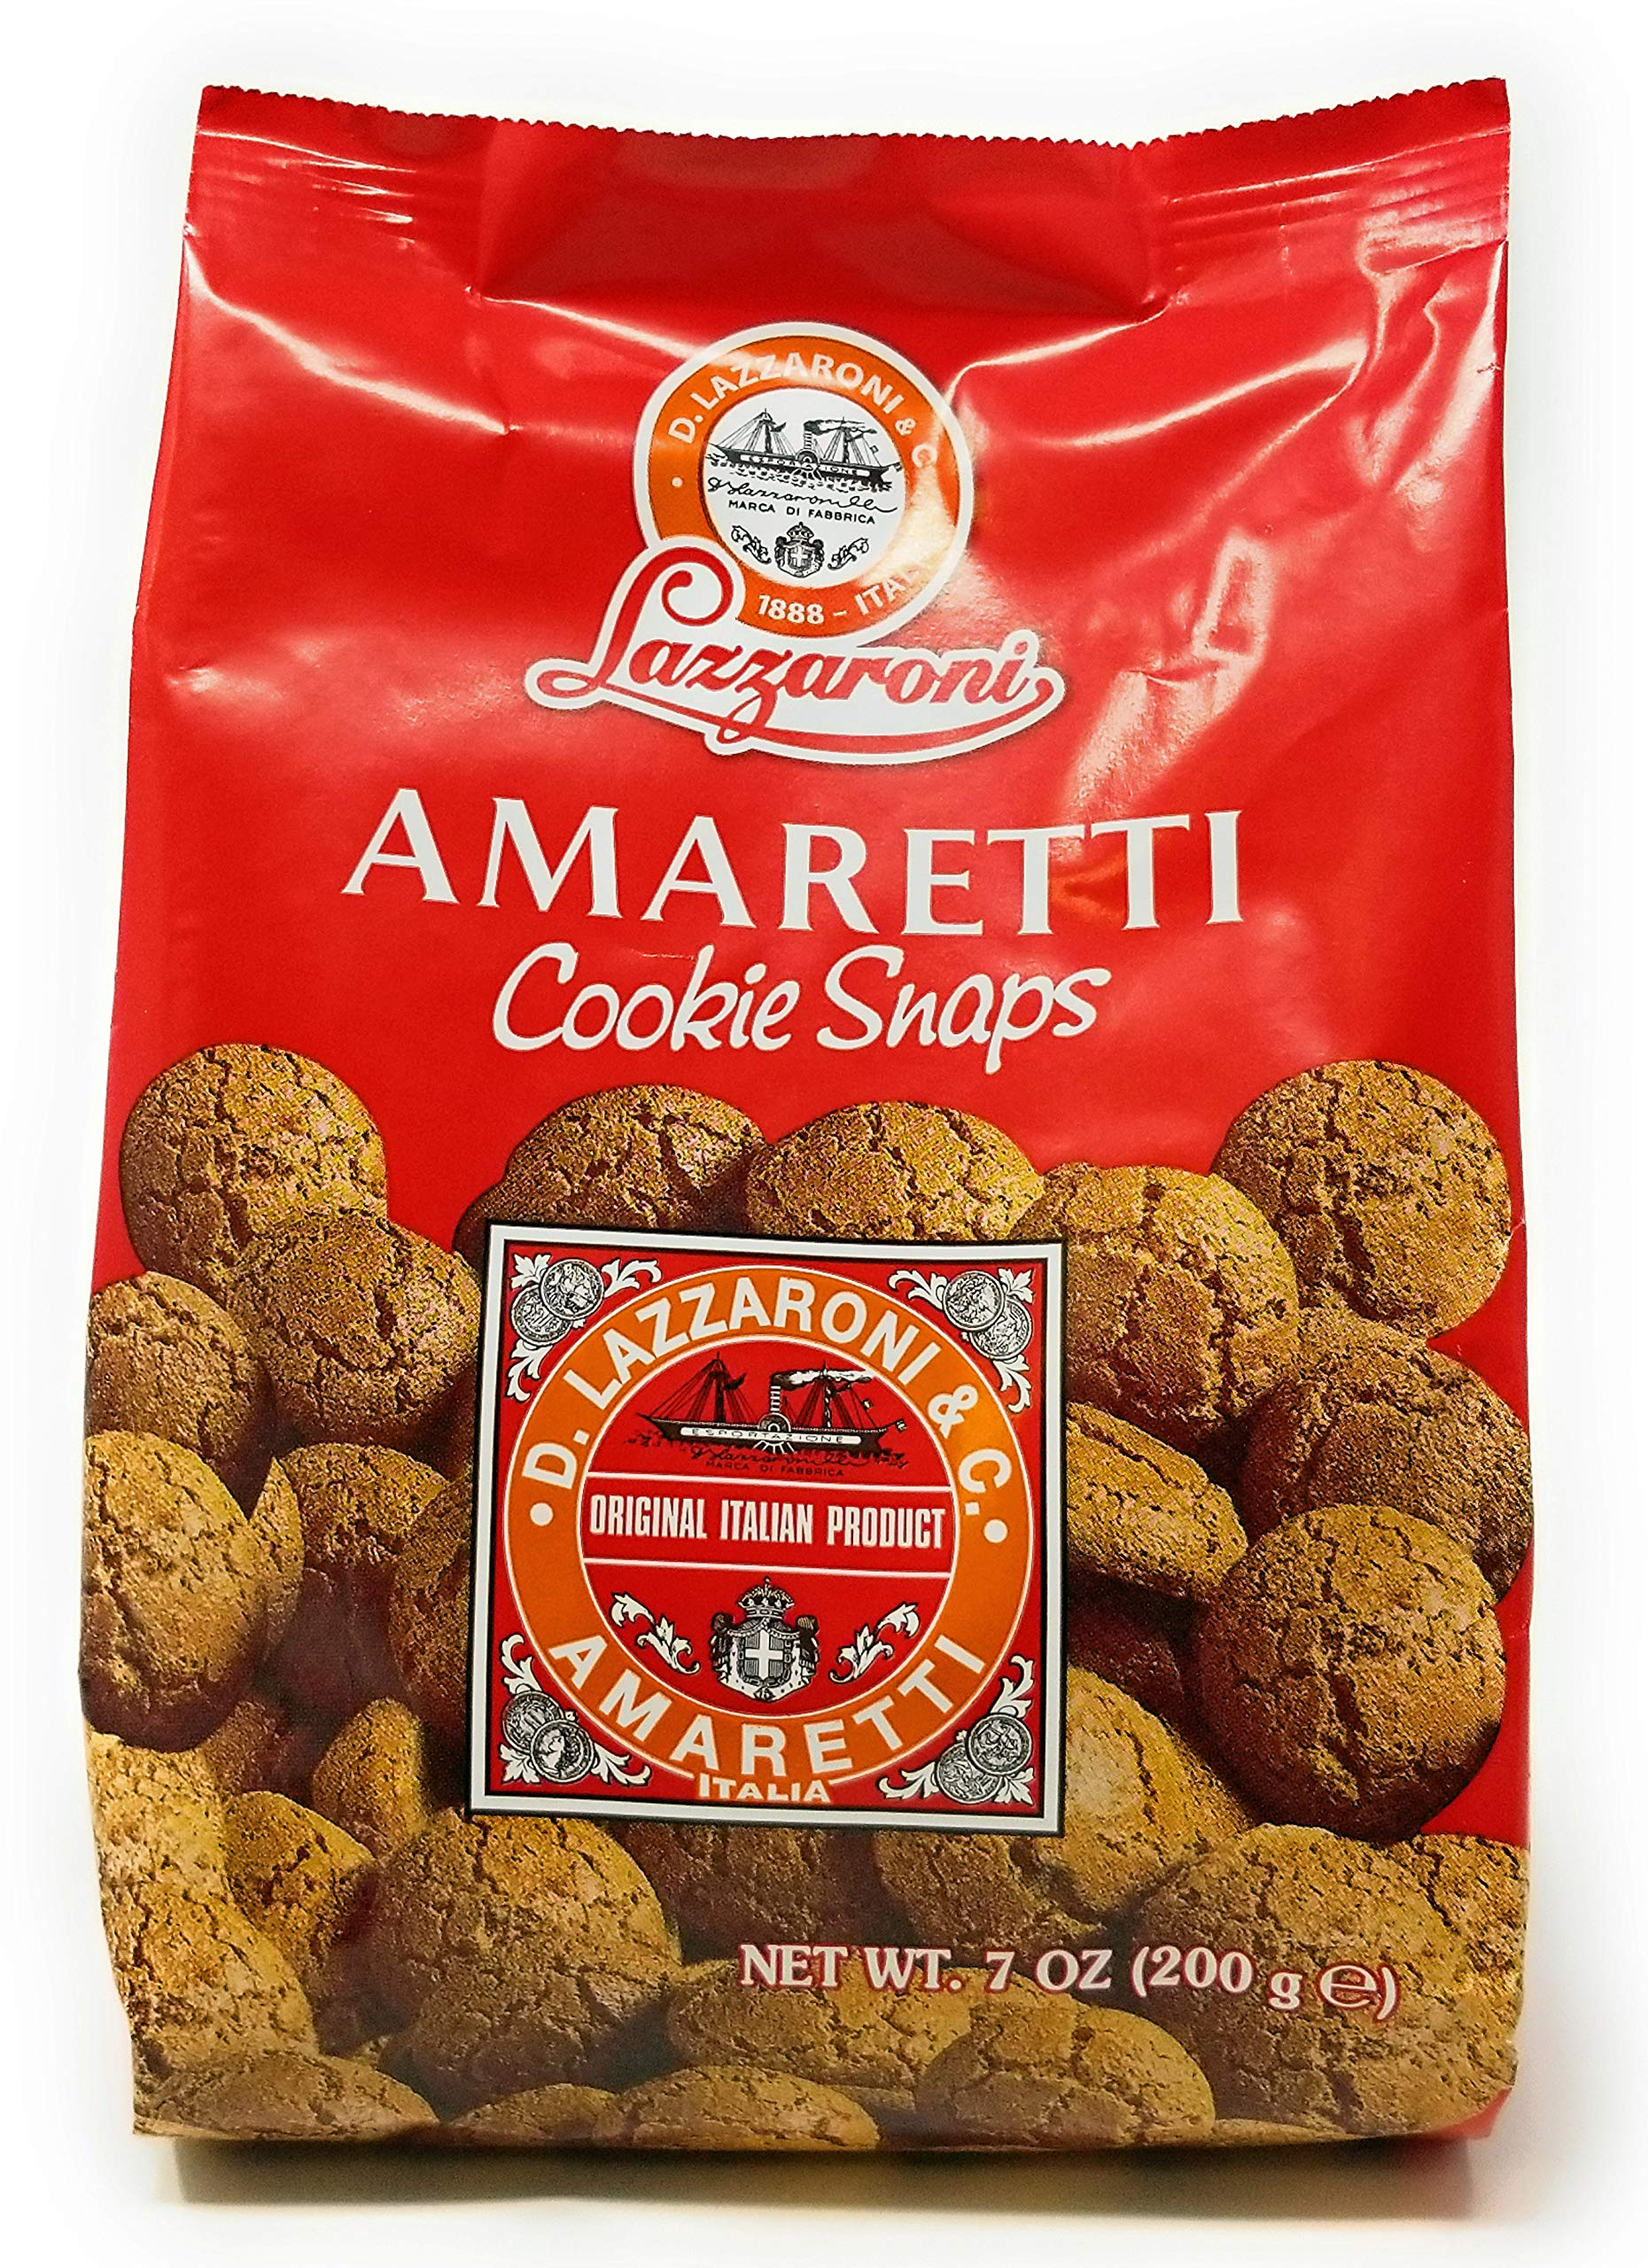 Amaretti Cookie Snaps by Lazzaroni Pack of 3 Bags (7 ounce each bag)